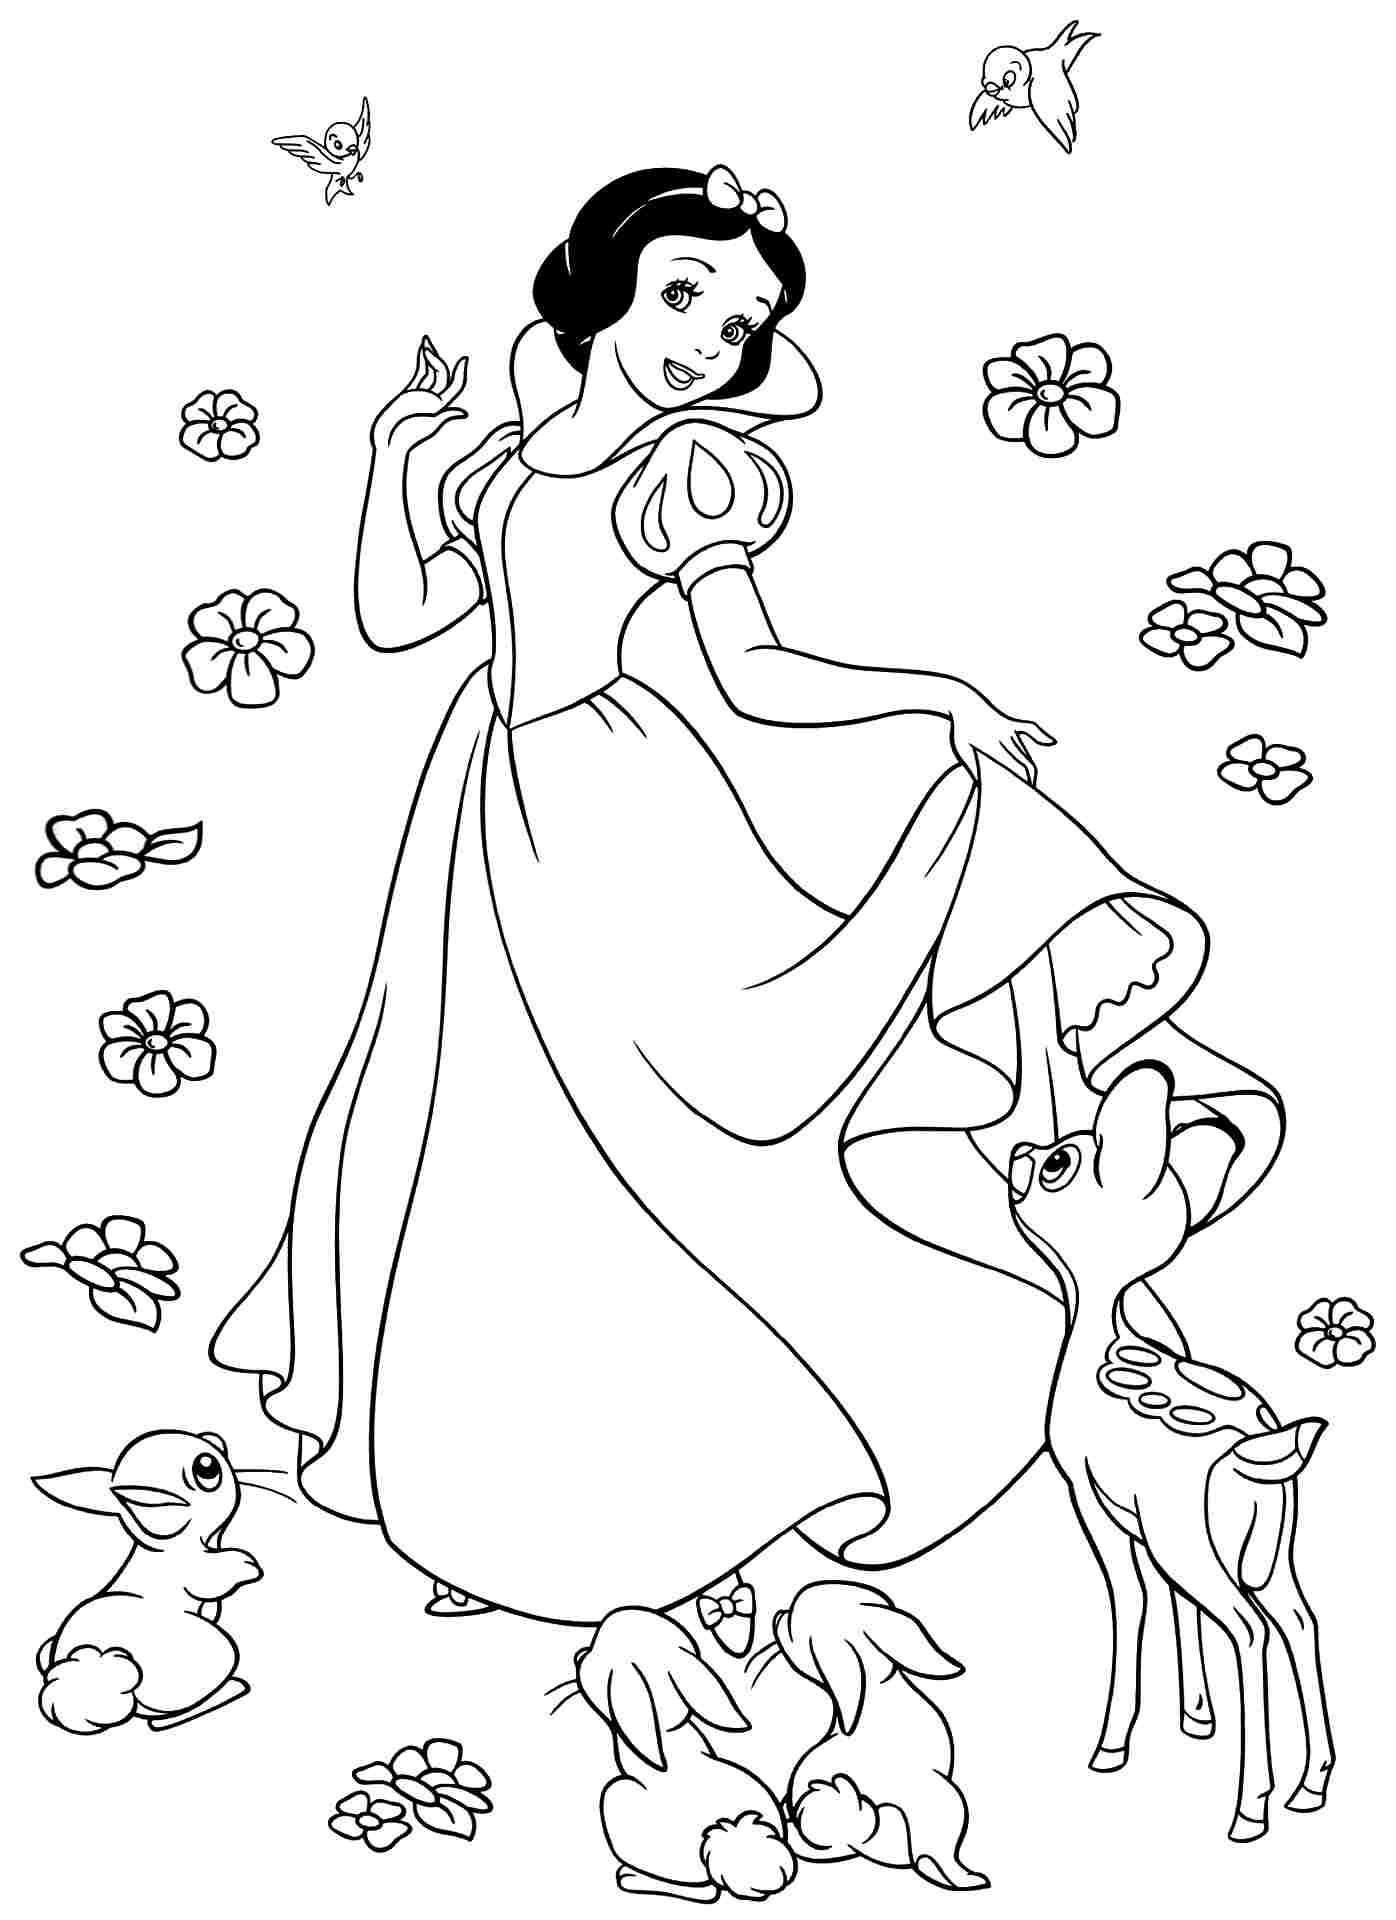 free kids christmas coloring pages  »  8 Image » Creative..!